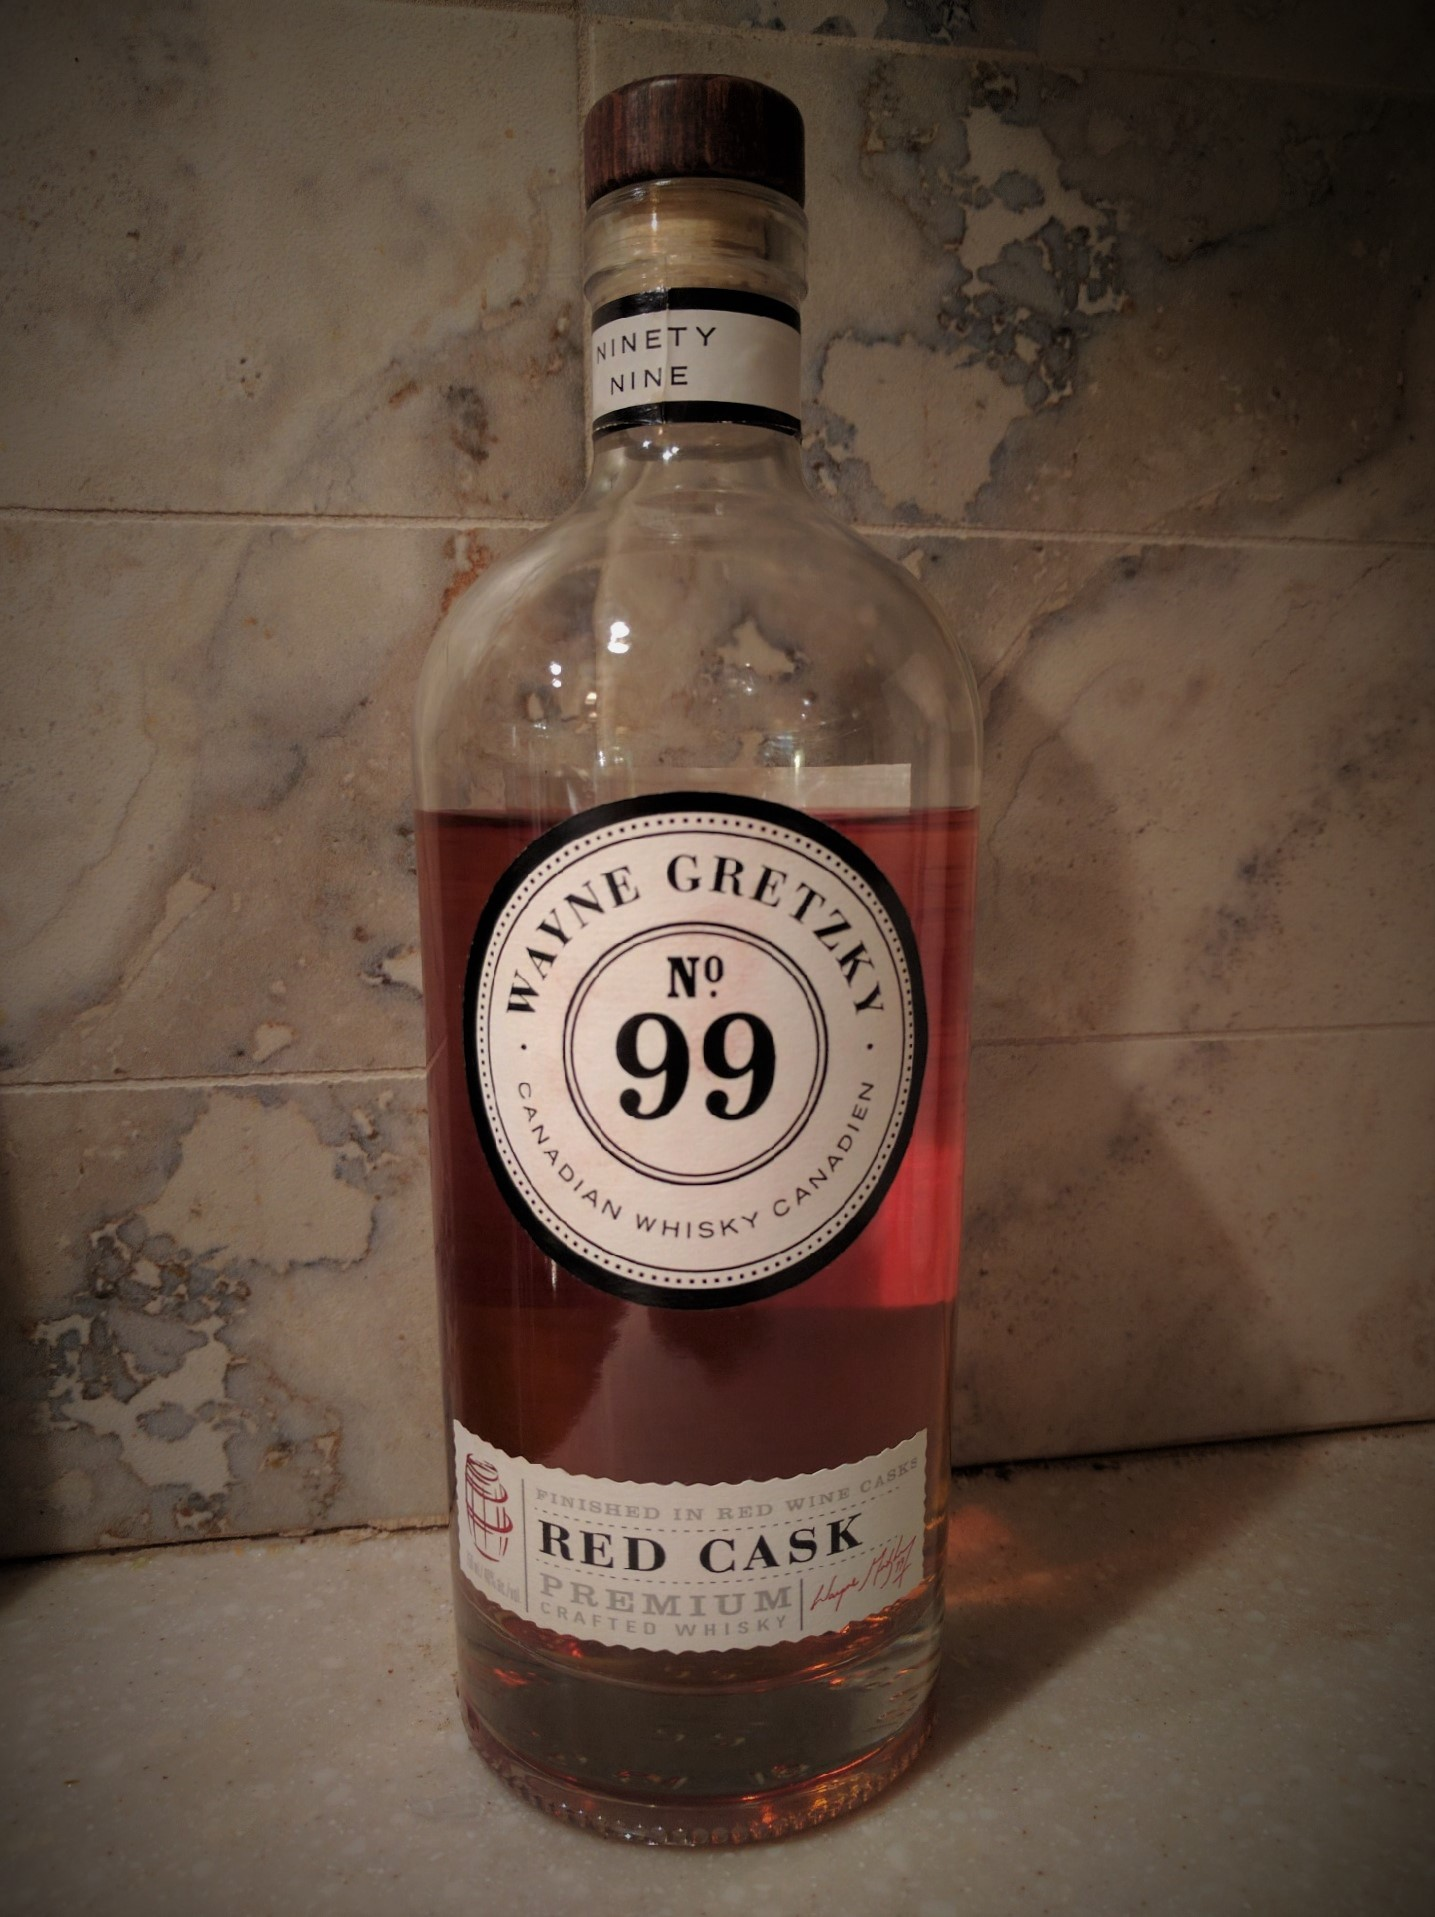 Wayne Gretzy 99 Red Cask with Dan, Davey, Vanni & Ryan